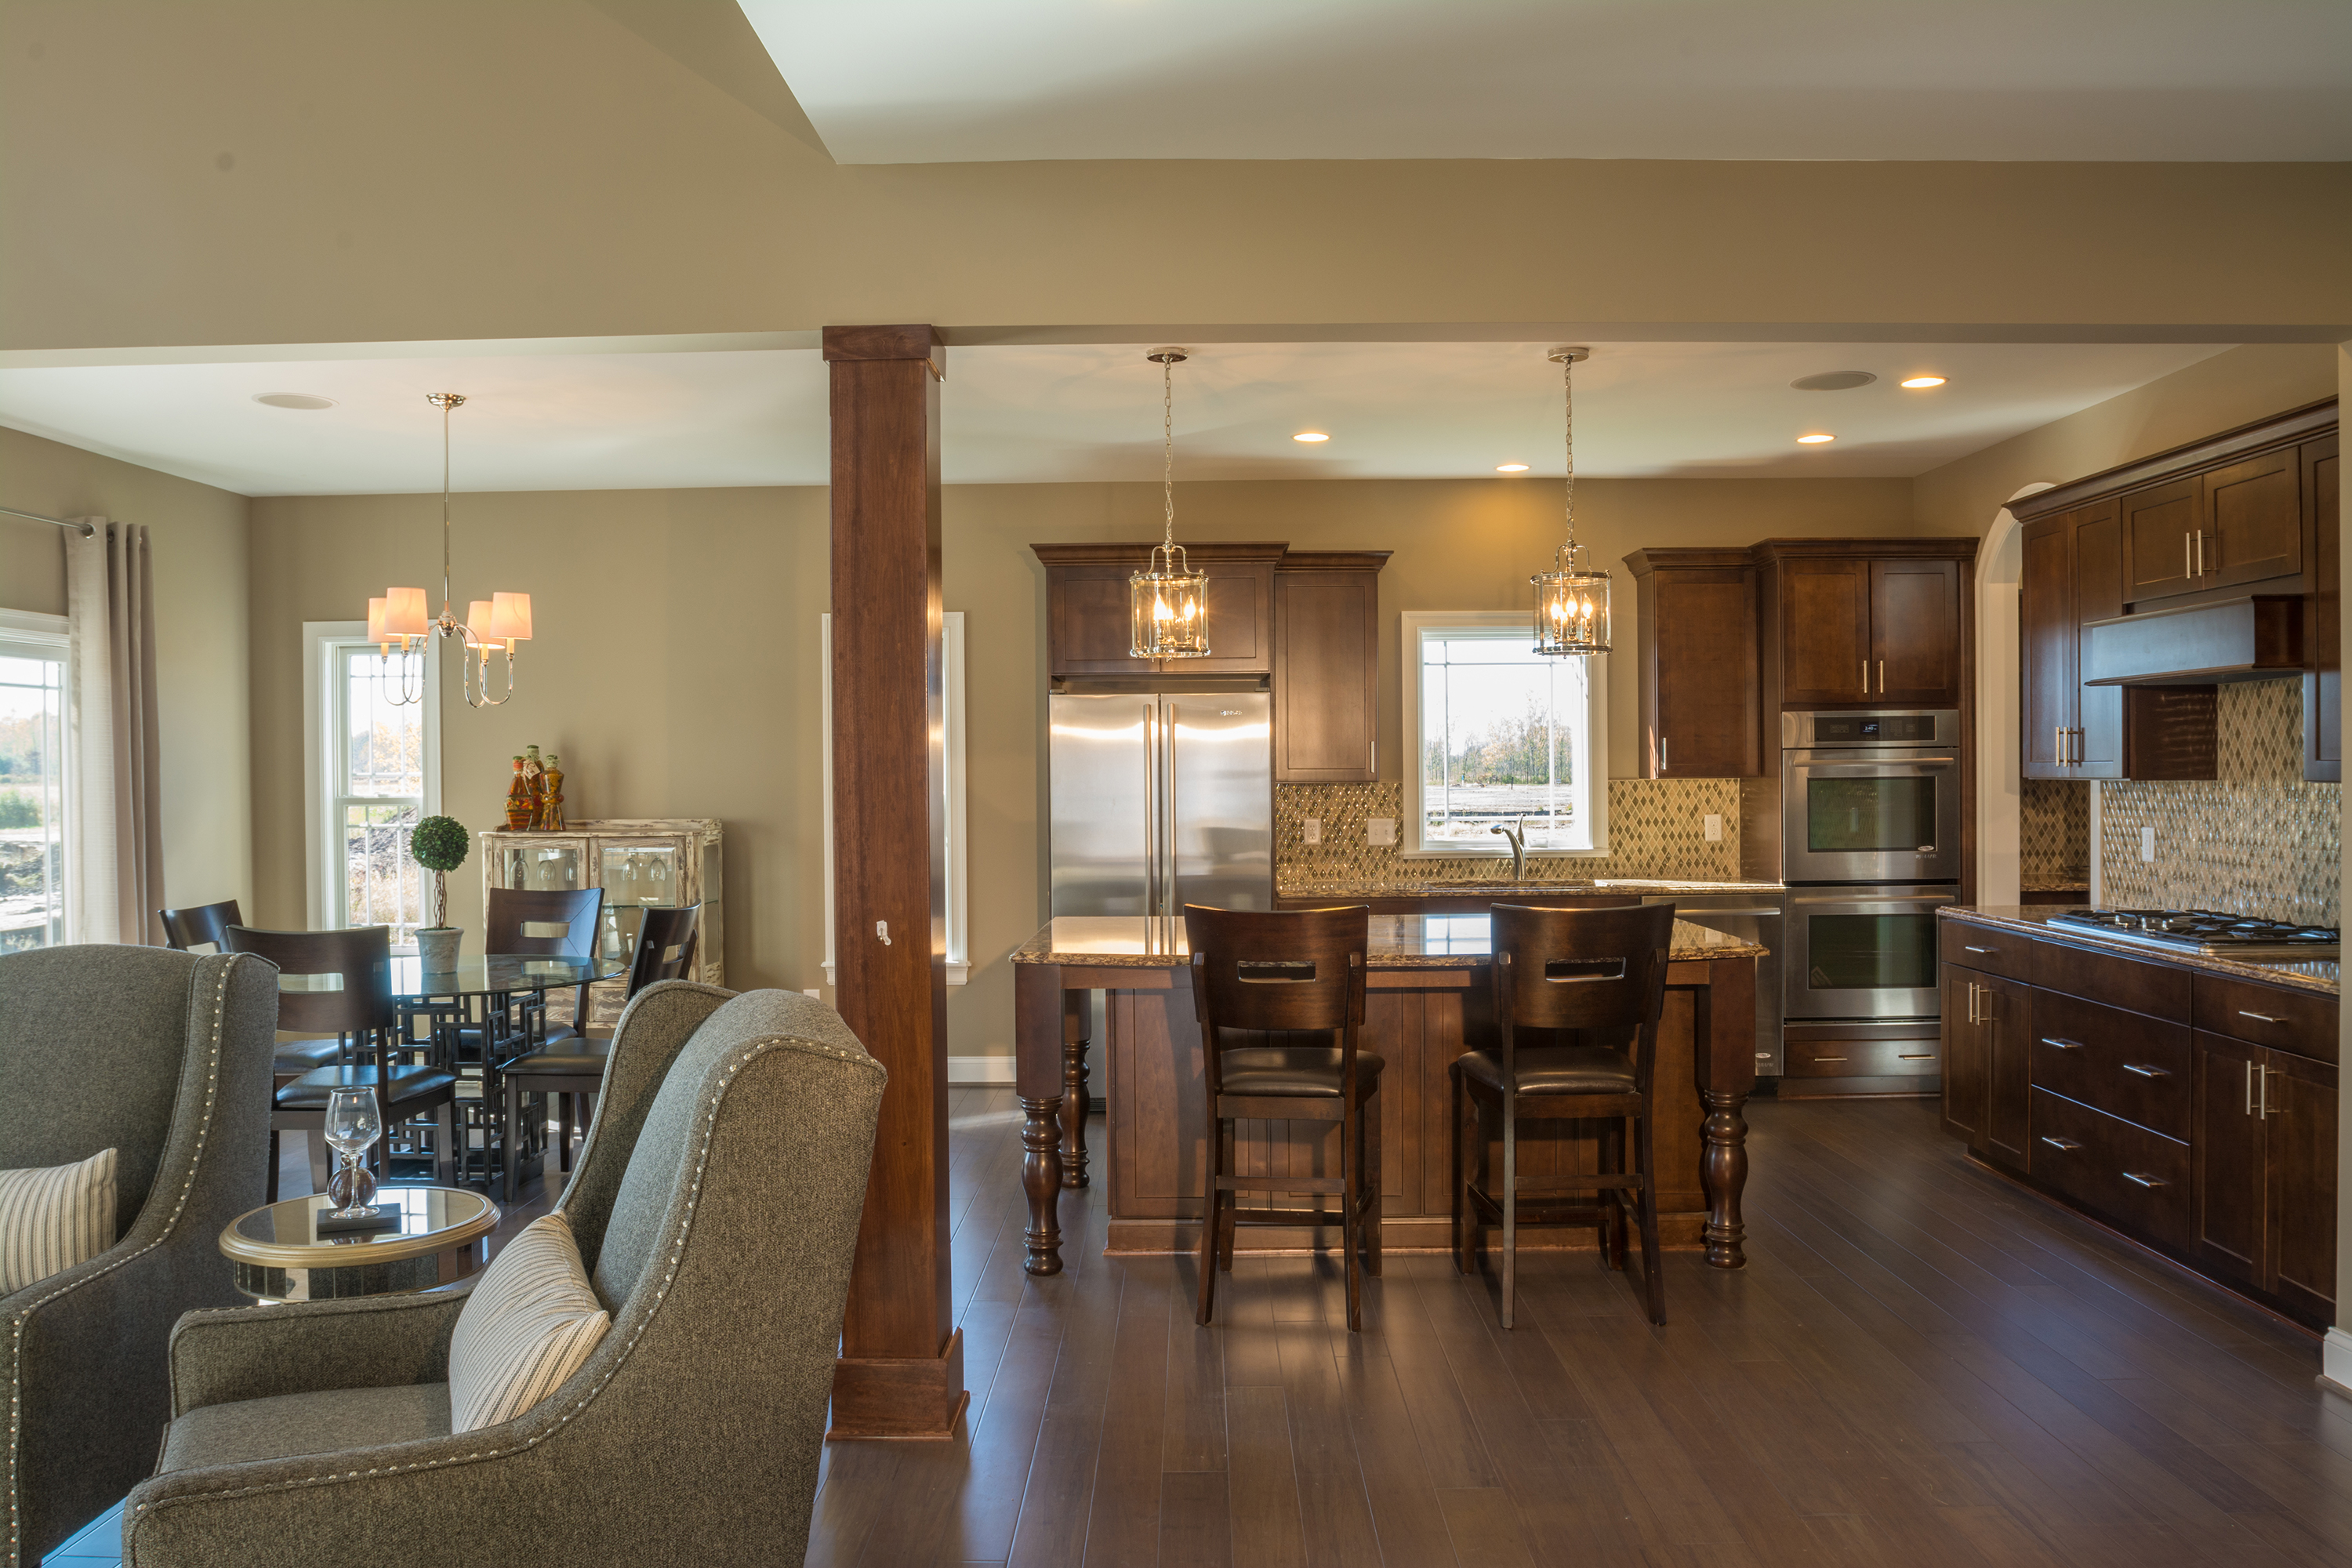 Interior kitchen open floor plan